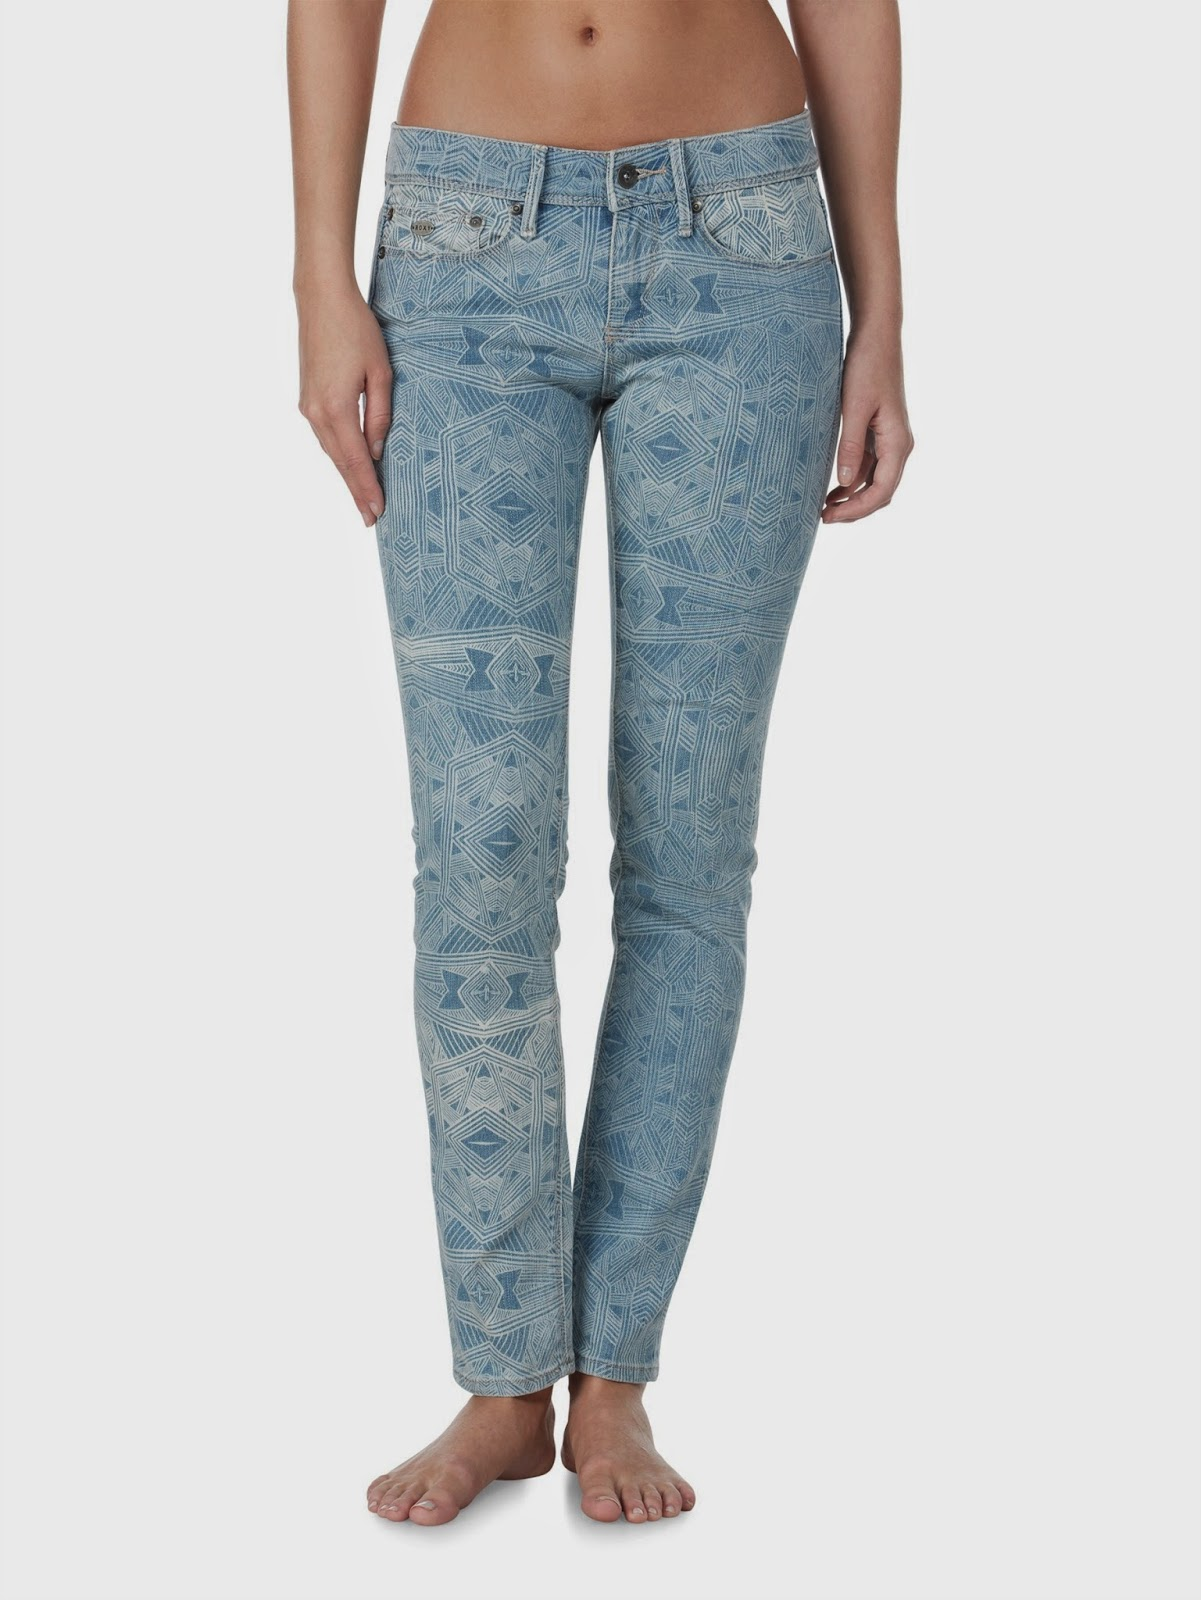 Jeans For Women Latest Designs New